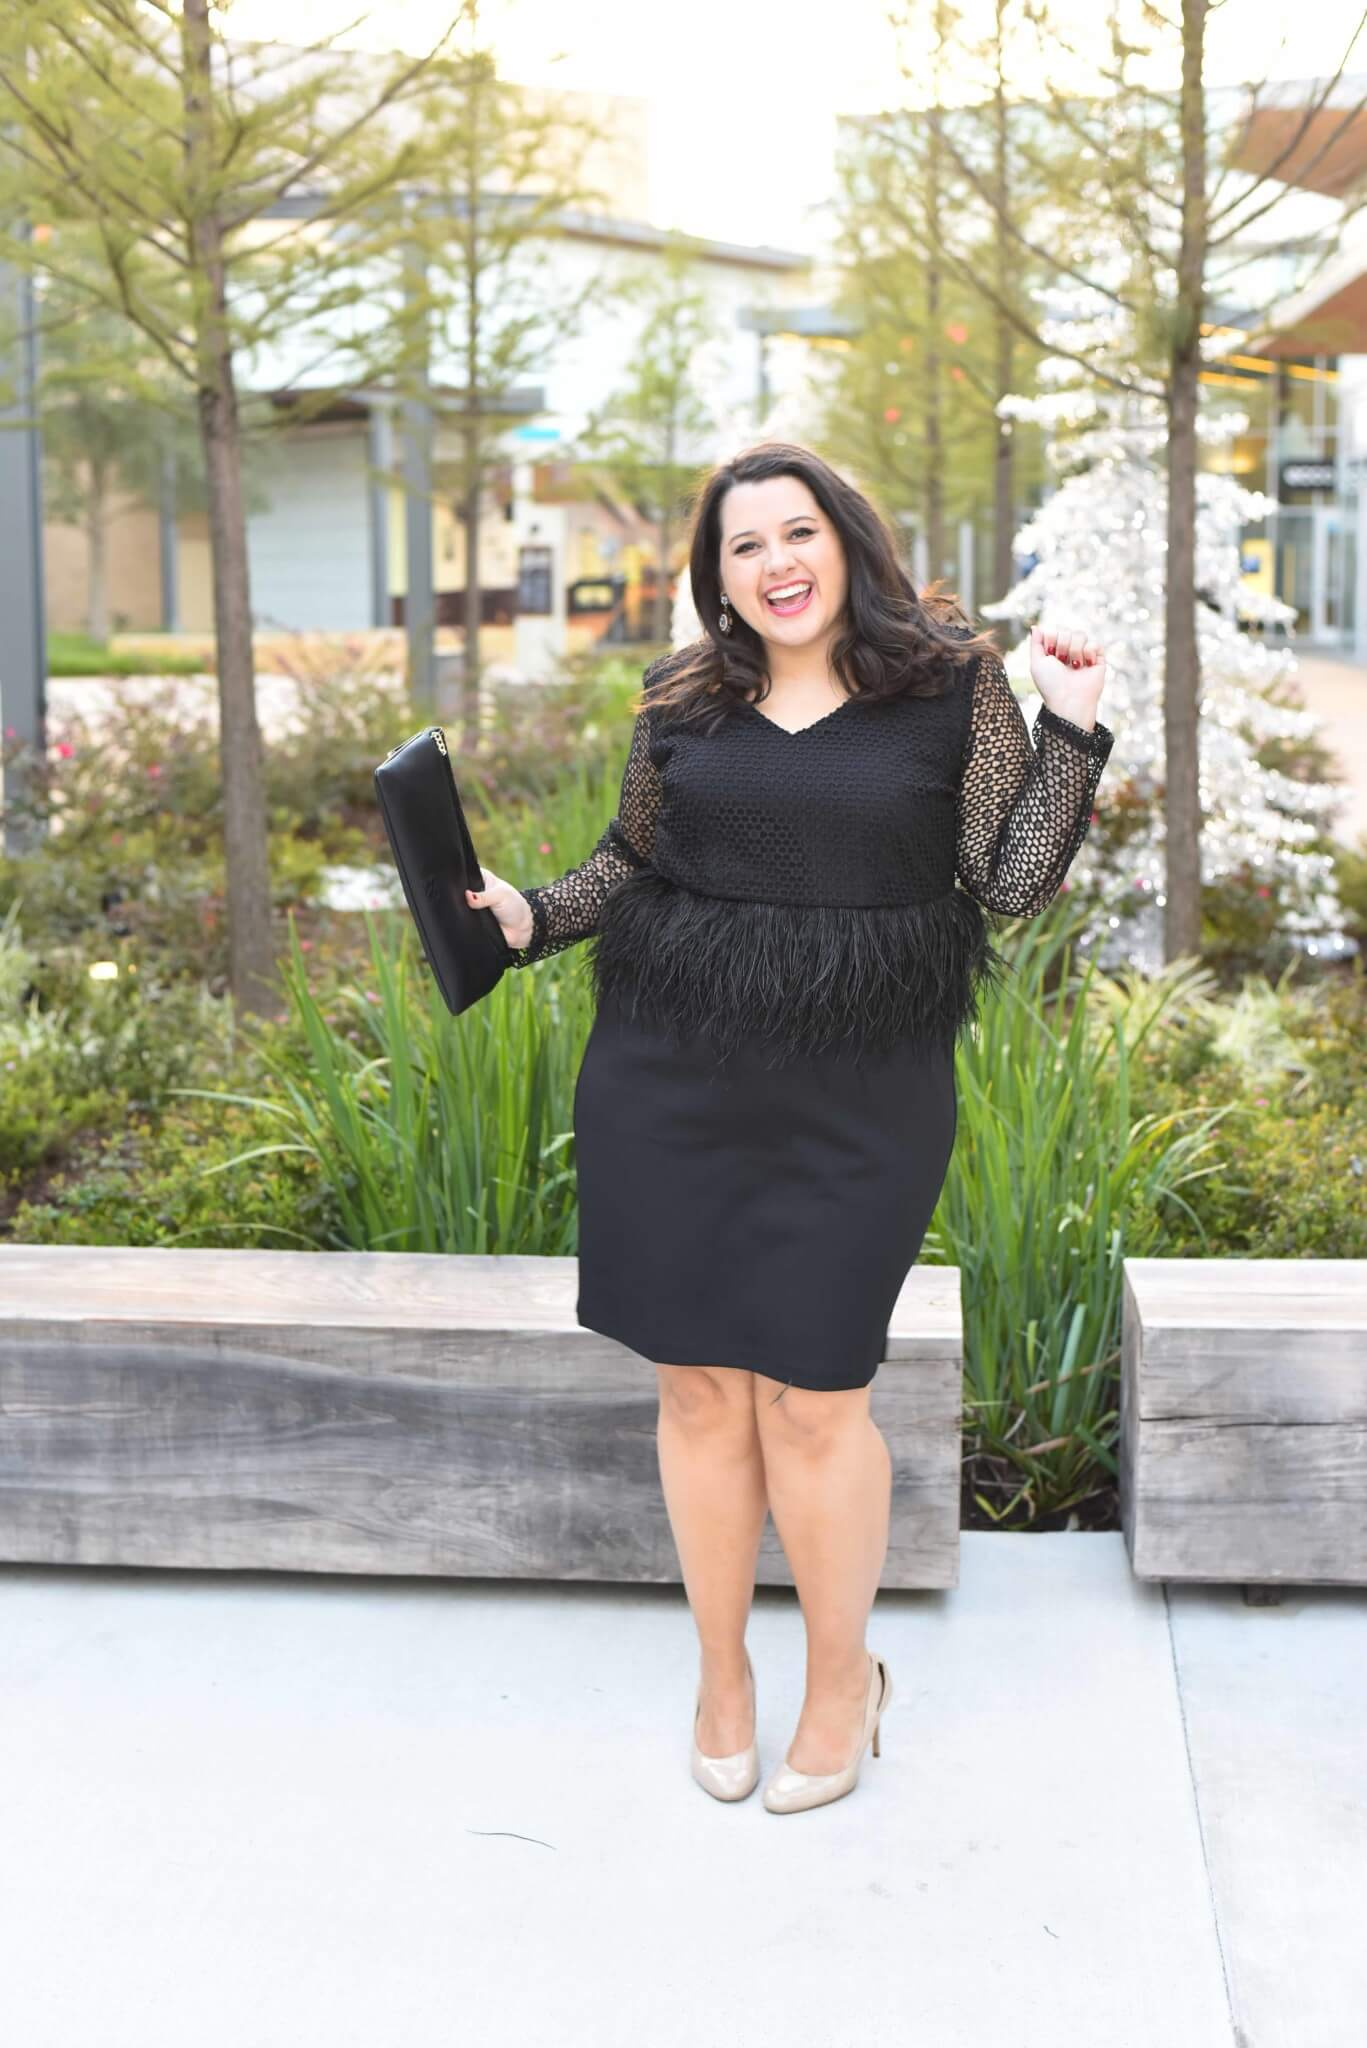 Emily from Something Gold, Something Blue is sharing her formal holiday party outfit including fabulous nude pumps, a gorgeous black lace and feather peplum dress and red crystal statement earrings. - @emilySGSB - About Emily, the woman behind popular Houston Curvy Fashion Blog, Something Gold, Something Blue